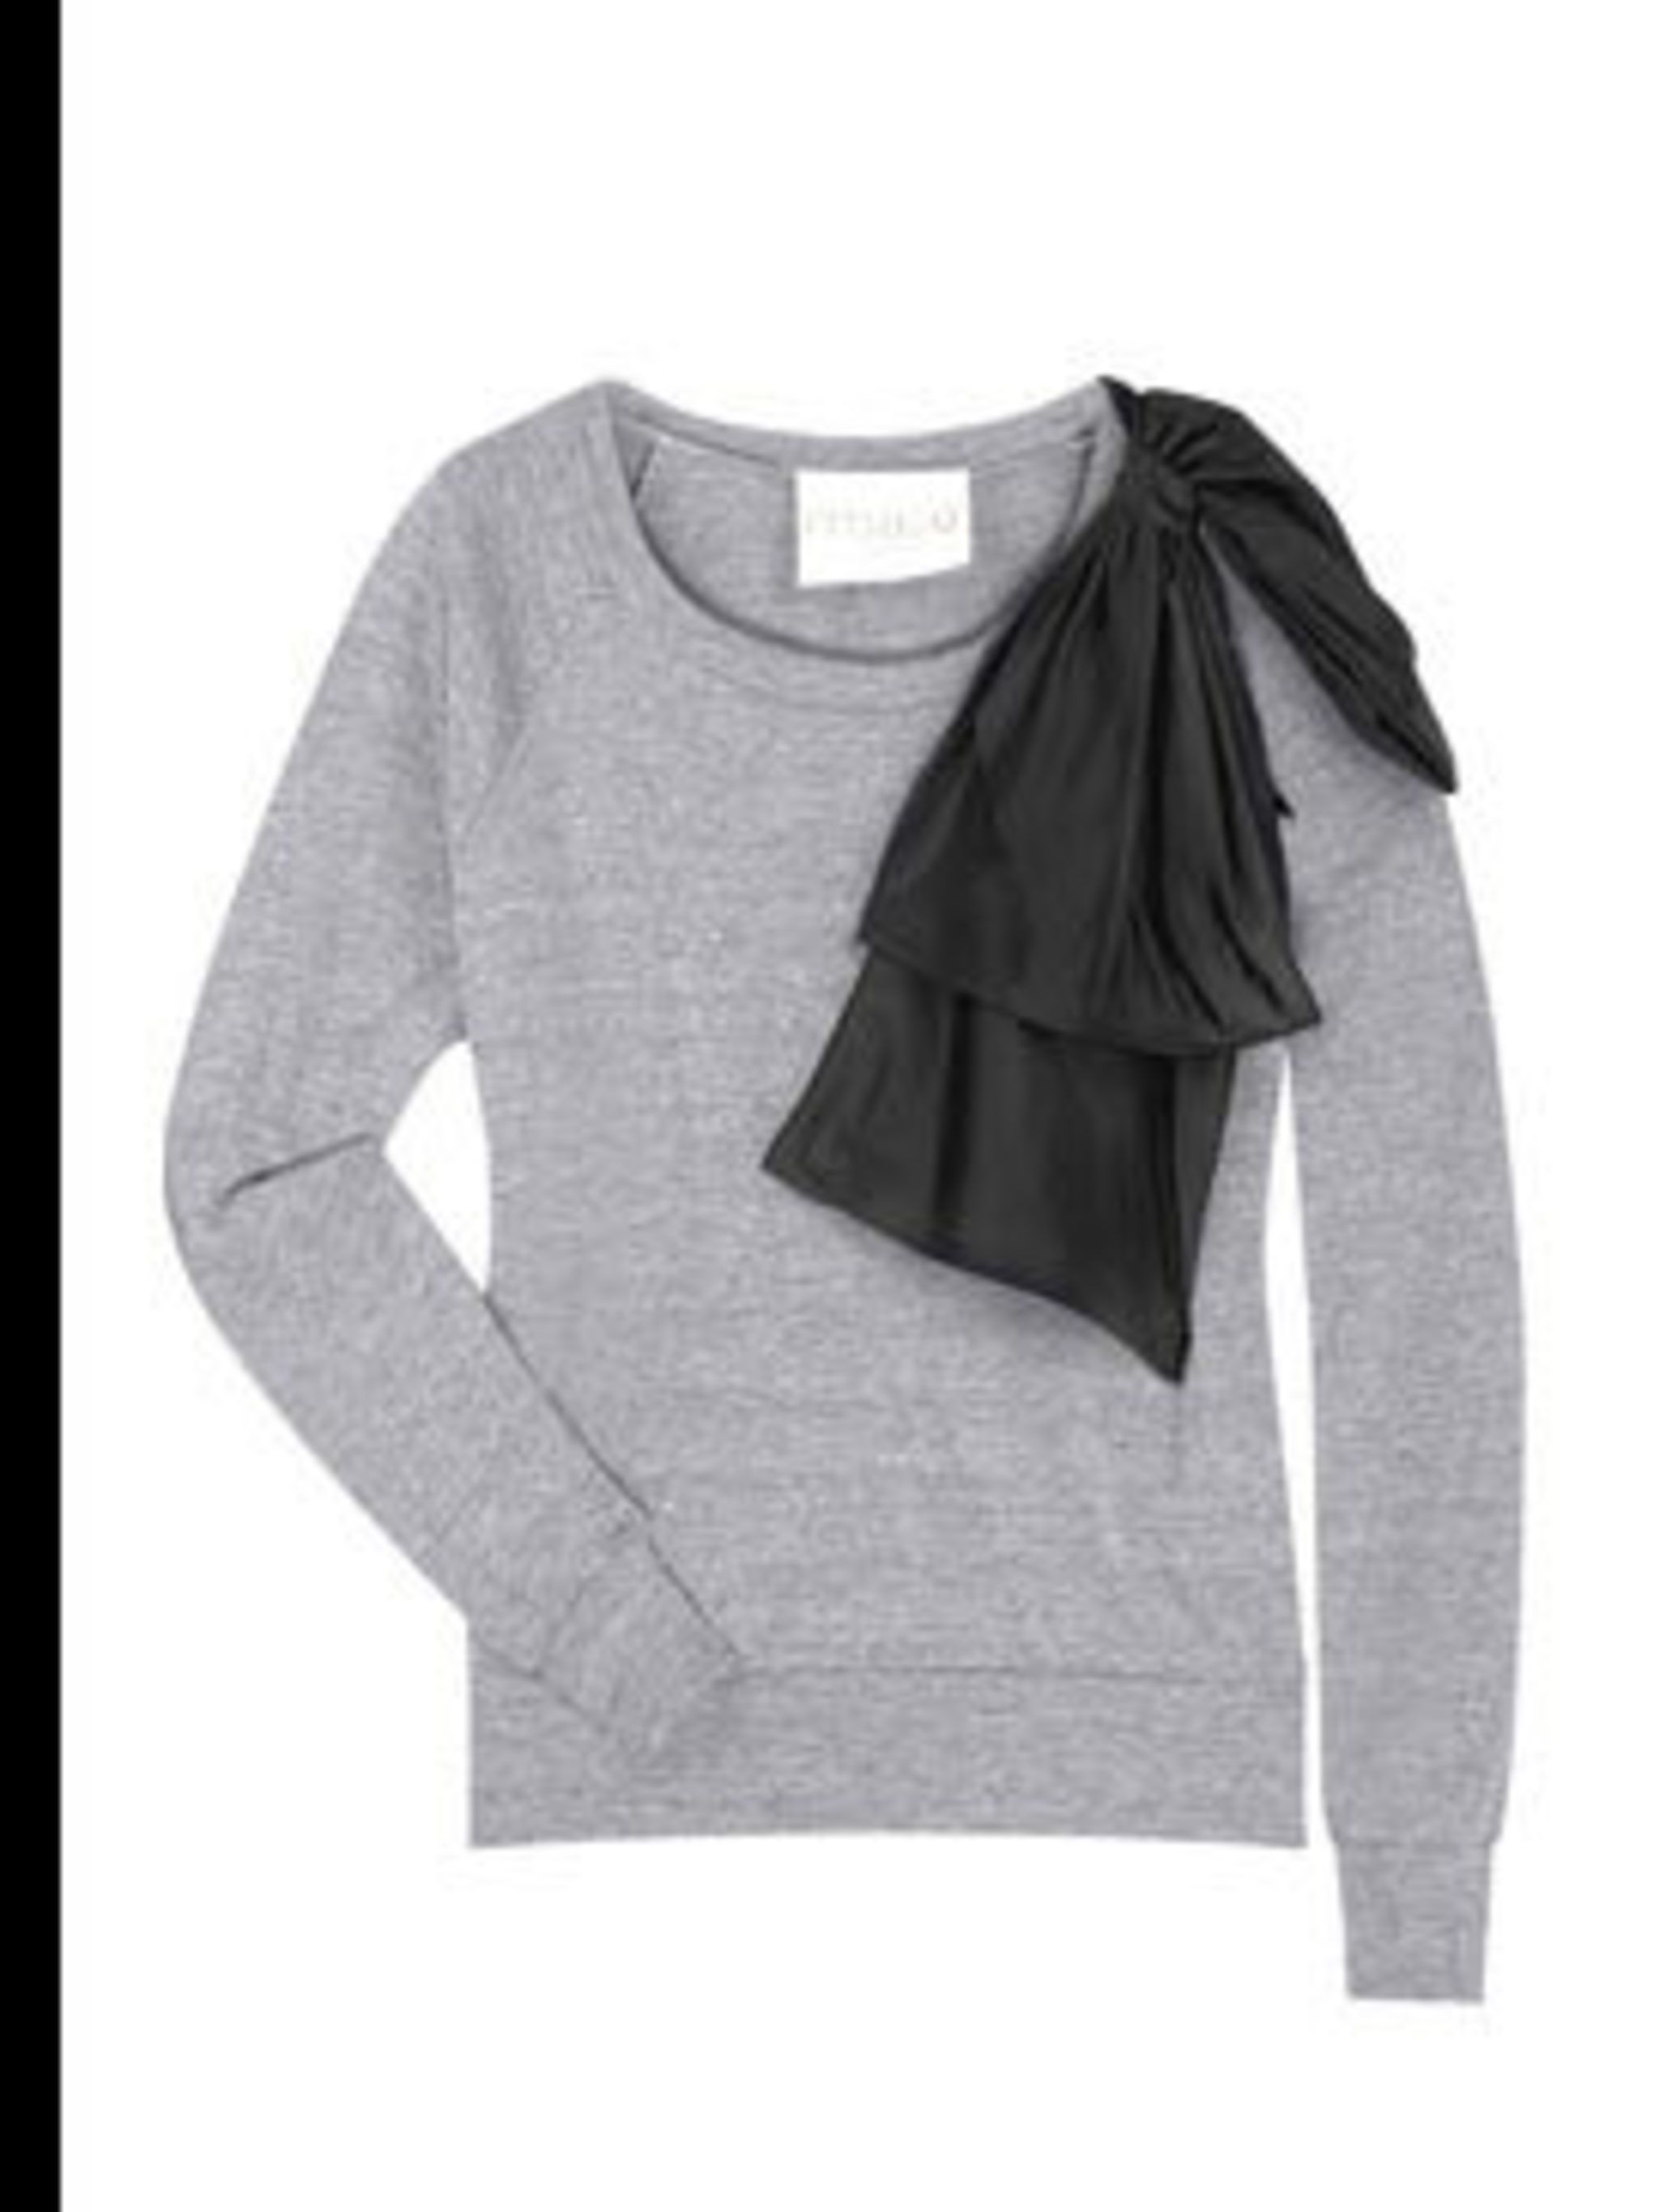 """<p>Sweater, £140 by Thread Social at <a href=""""http://www.net-a-porter.com/product/45435"""">Net-a-Porter</a></p>"""